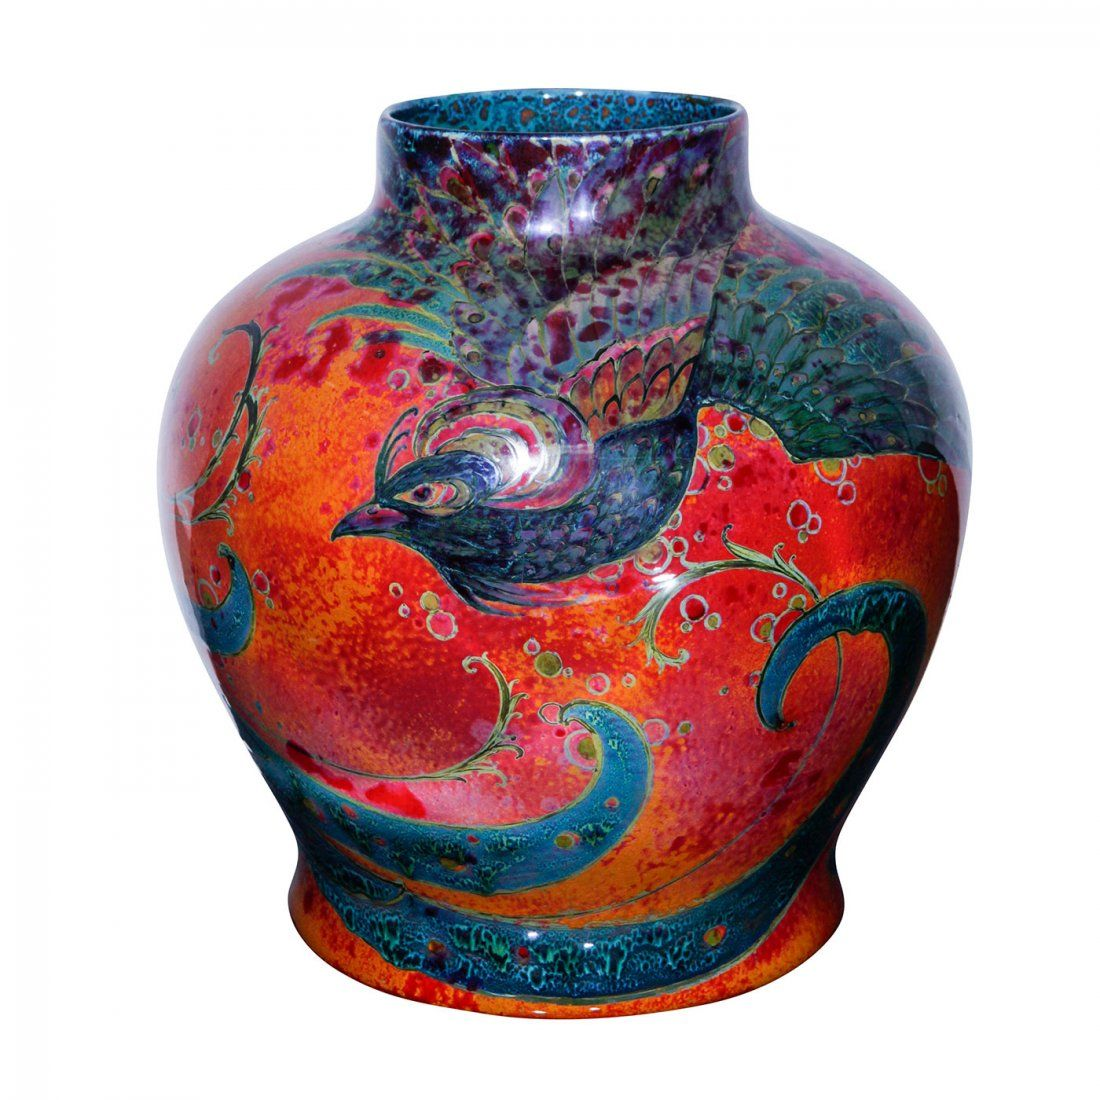 SUNG FLAMBE PEACOCK EXHIBITION VASE BY ROYAL DOULTON